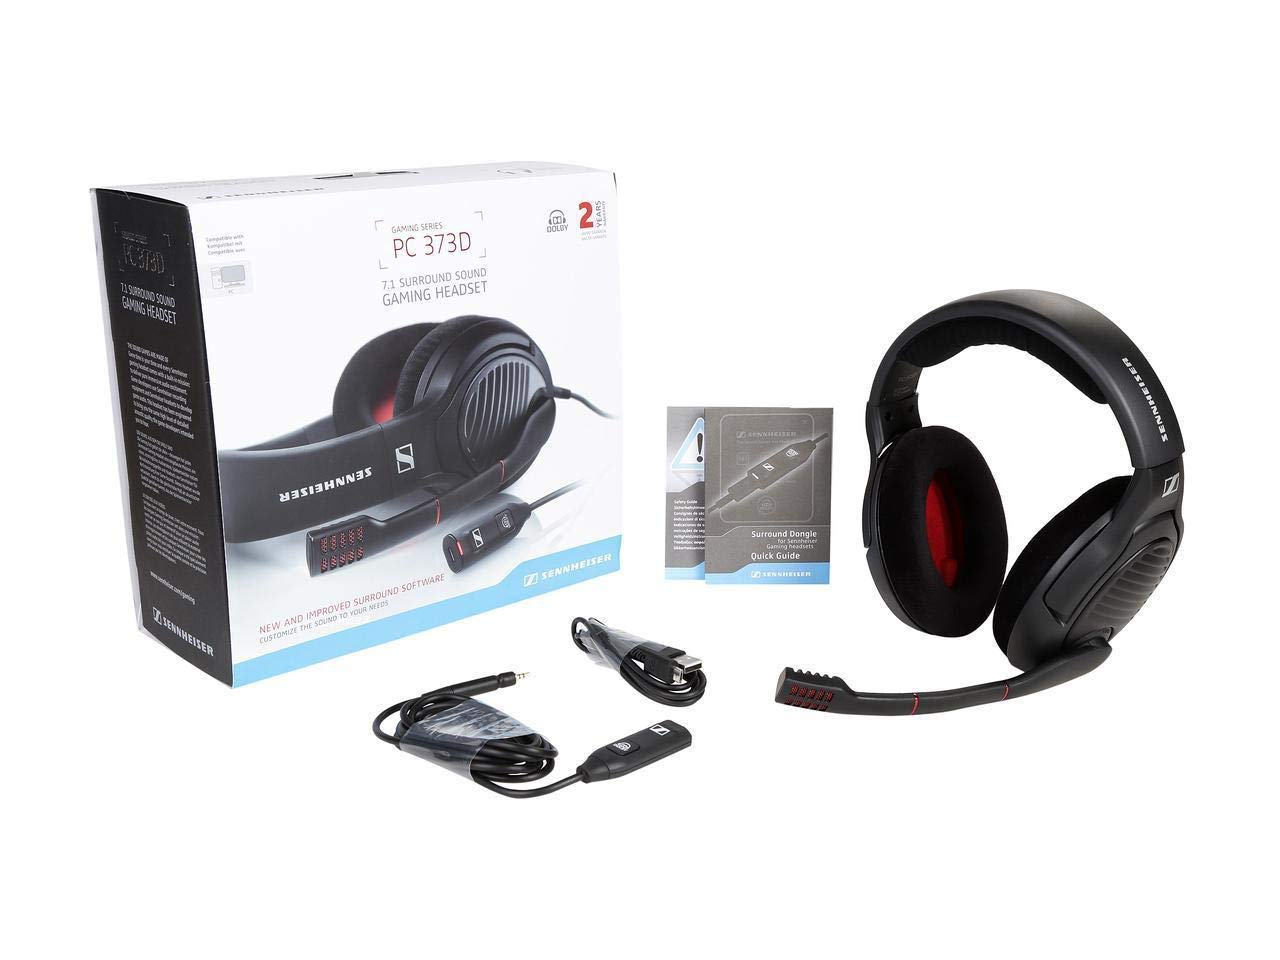 19af735b887 Sennheiser PC 373D 7.1 Surround Sound Gaming Headset - Black/Red:  Amazon.co.uk: Computers & Accessories